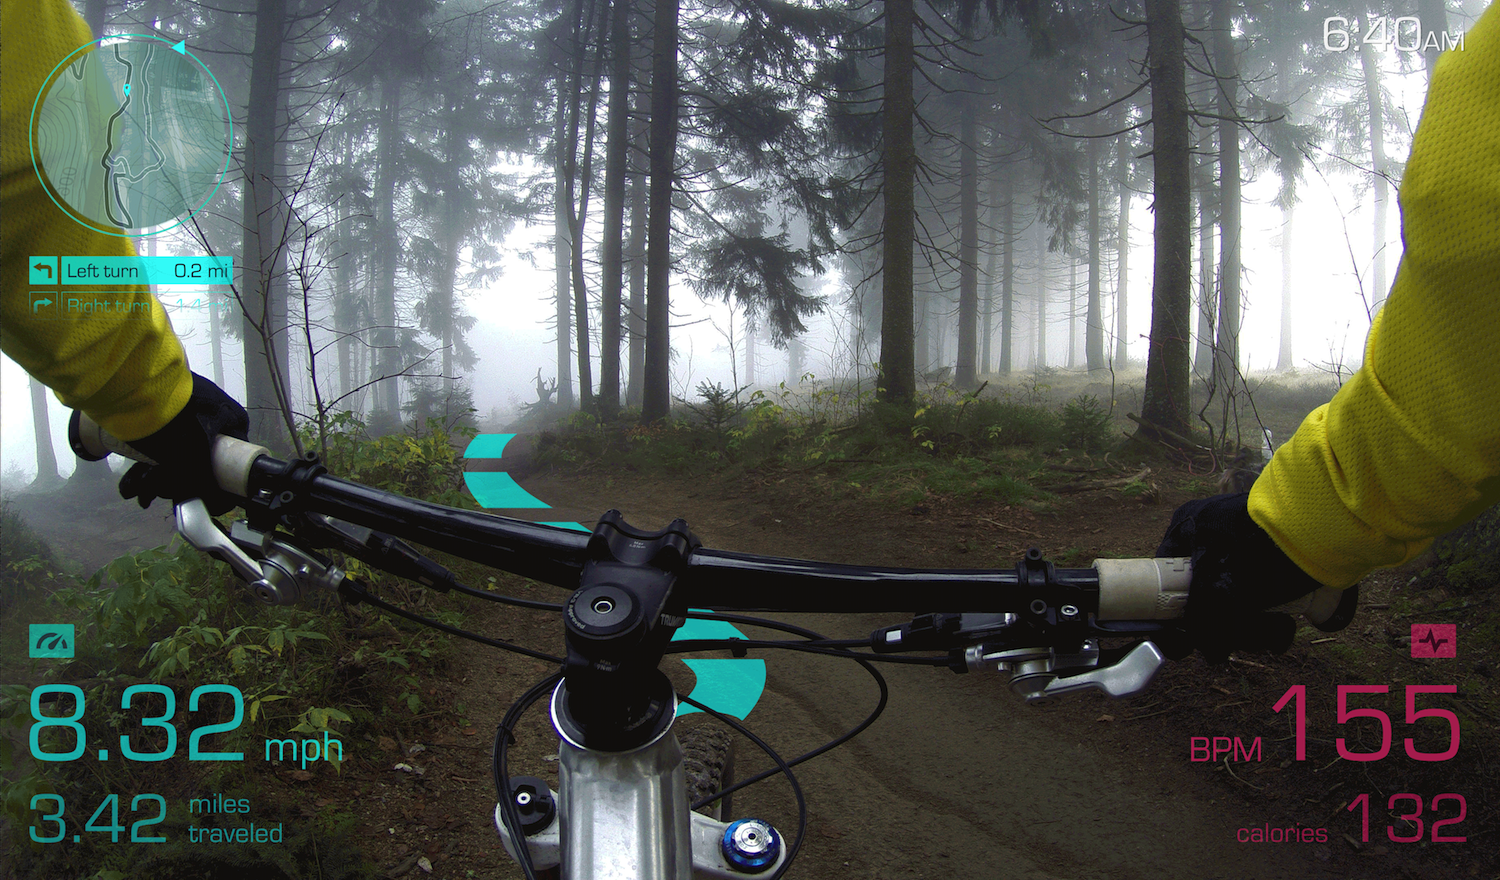 augmented reality heads up display for bike